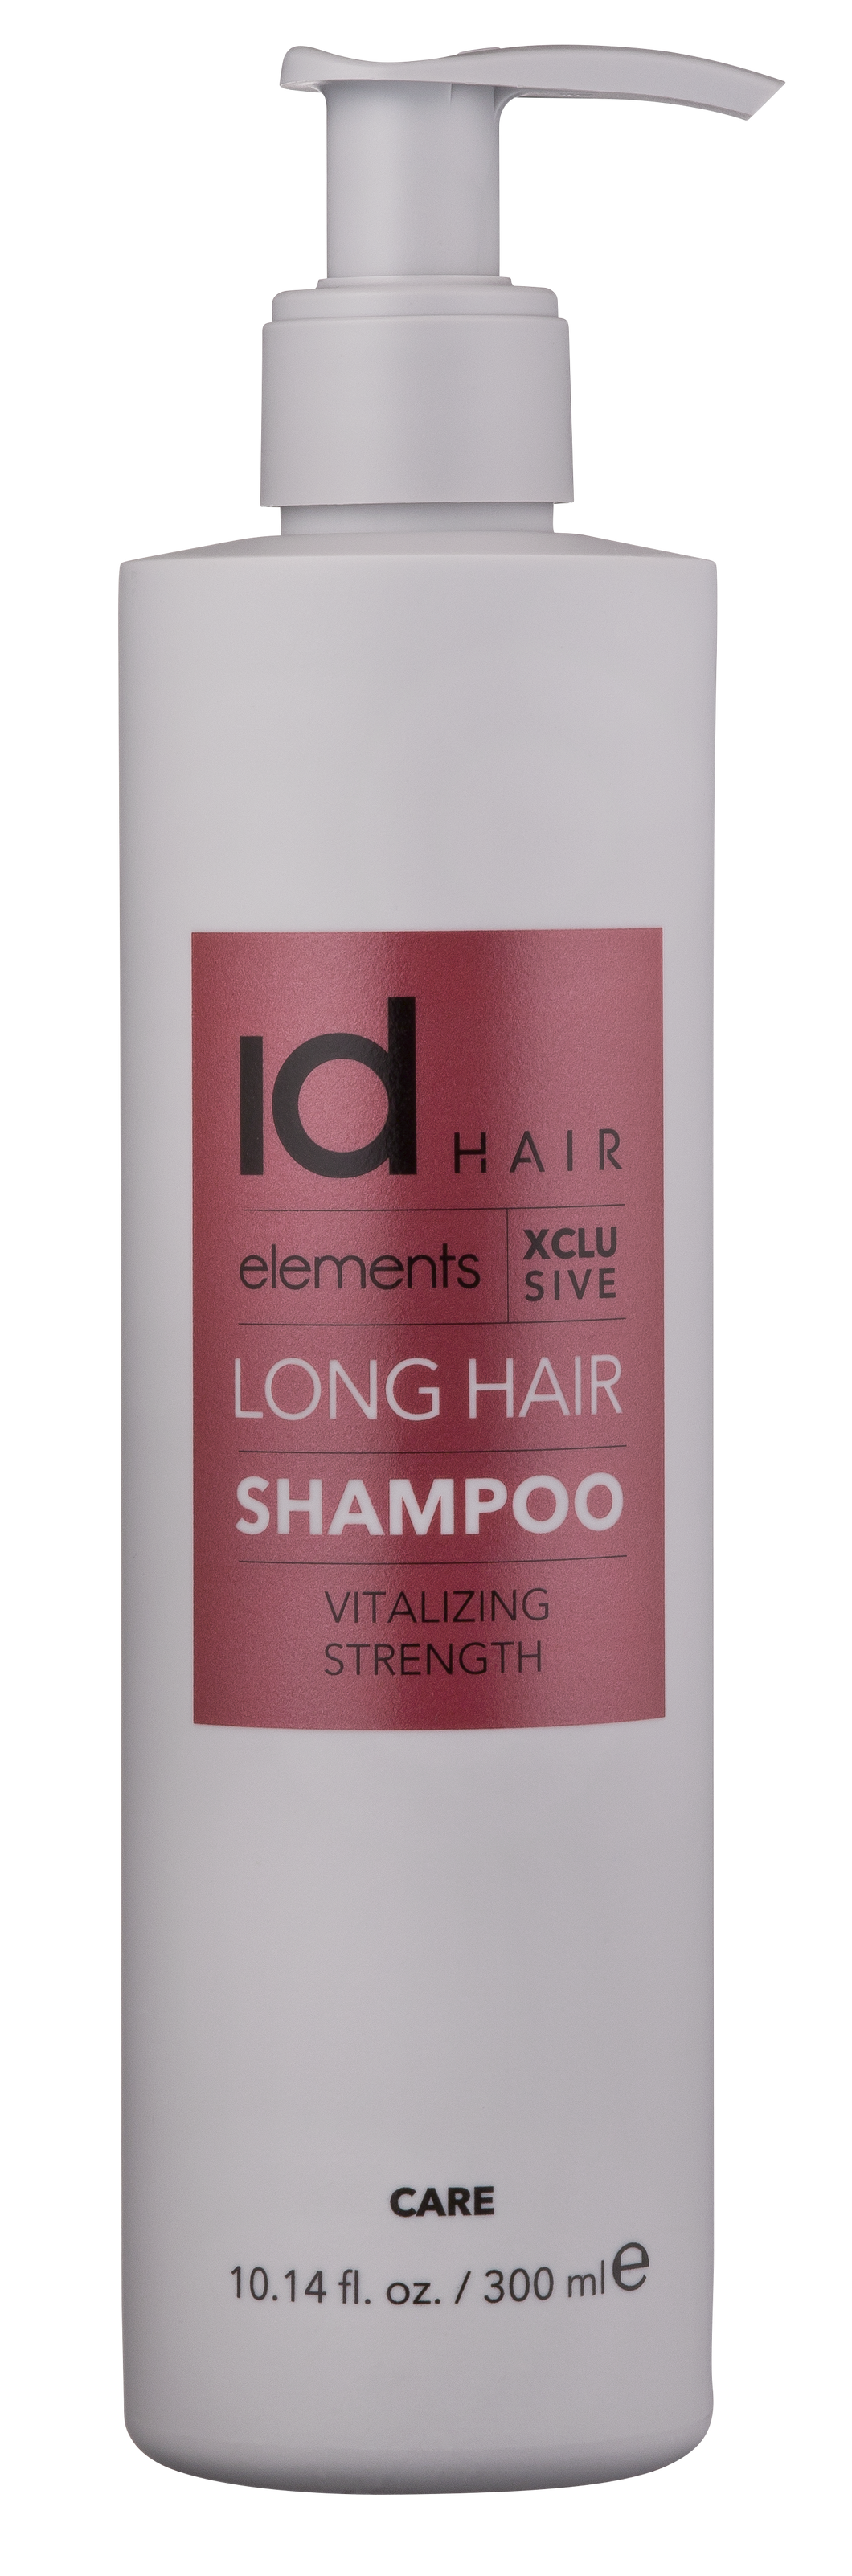 ELEMENTS XCLUSIVE - Long Hair Shampoo 300ML